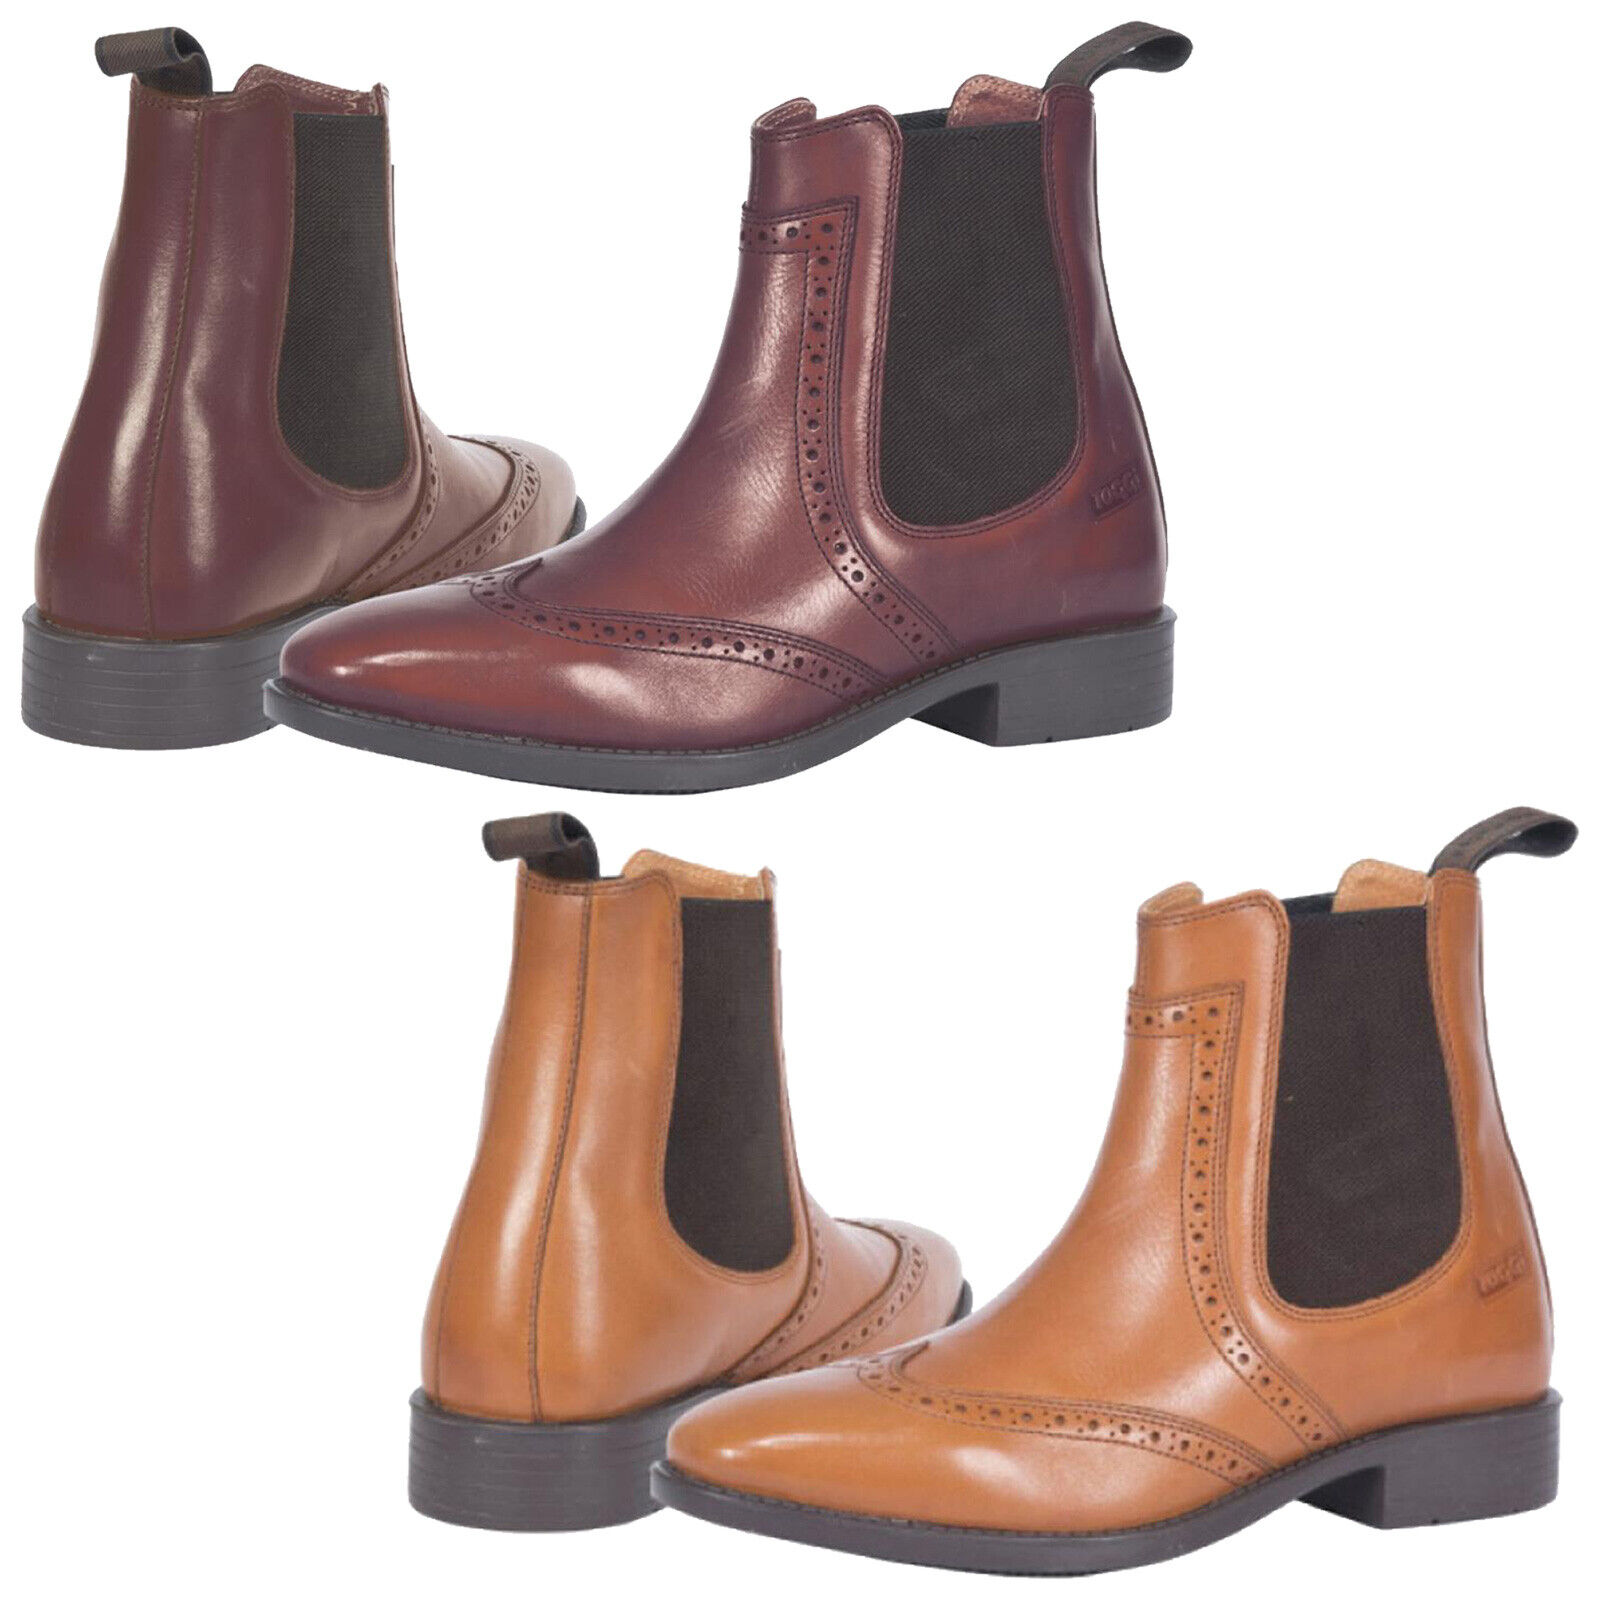 7a5db0df0a5 Toggi Adult Clark Jodhpur Equestrian Boots - Leather Dealer Chelsea Horse  Riding